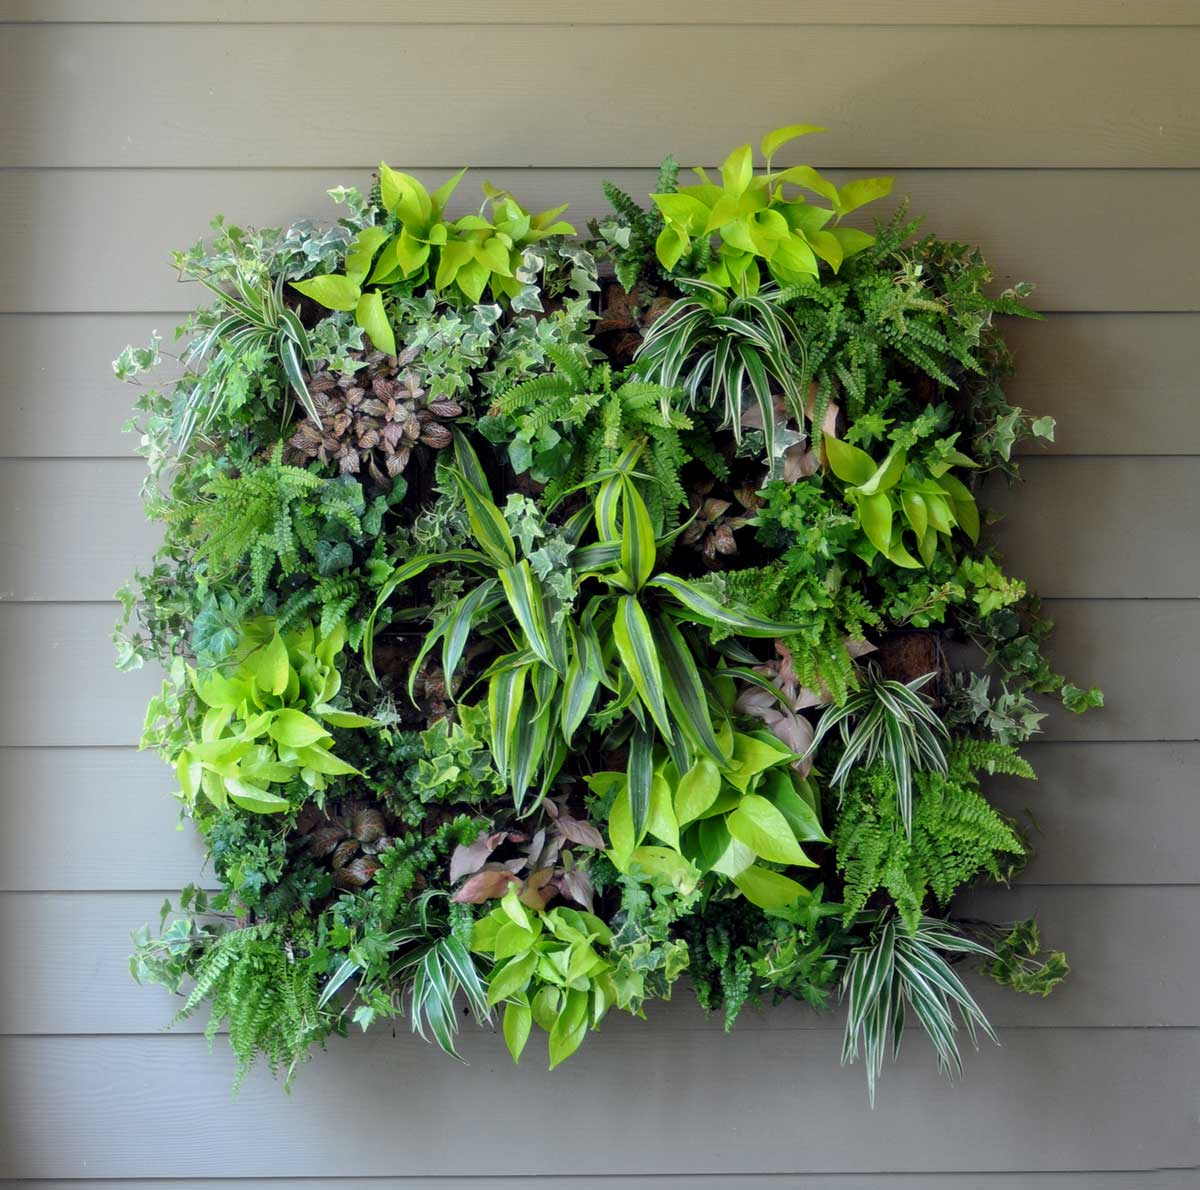 Charming Vertical Gardens In Darwin And Casuarina